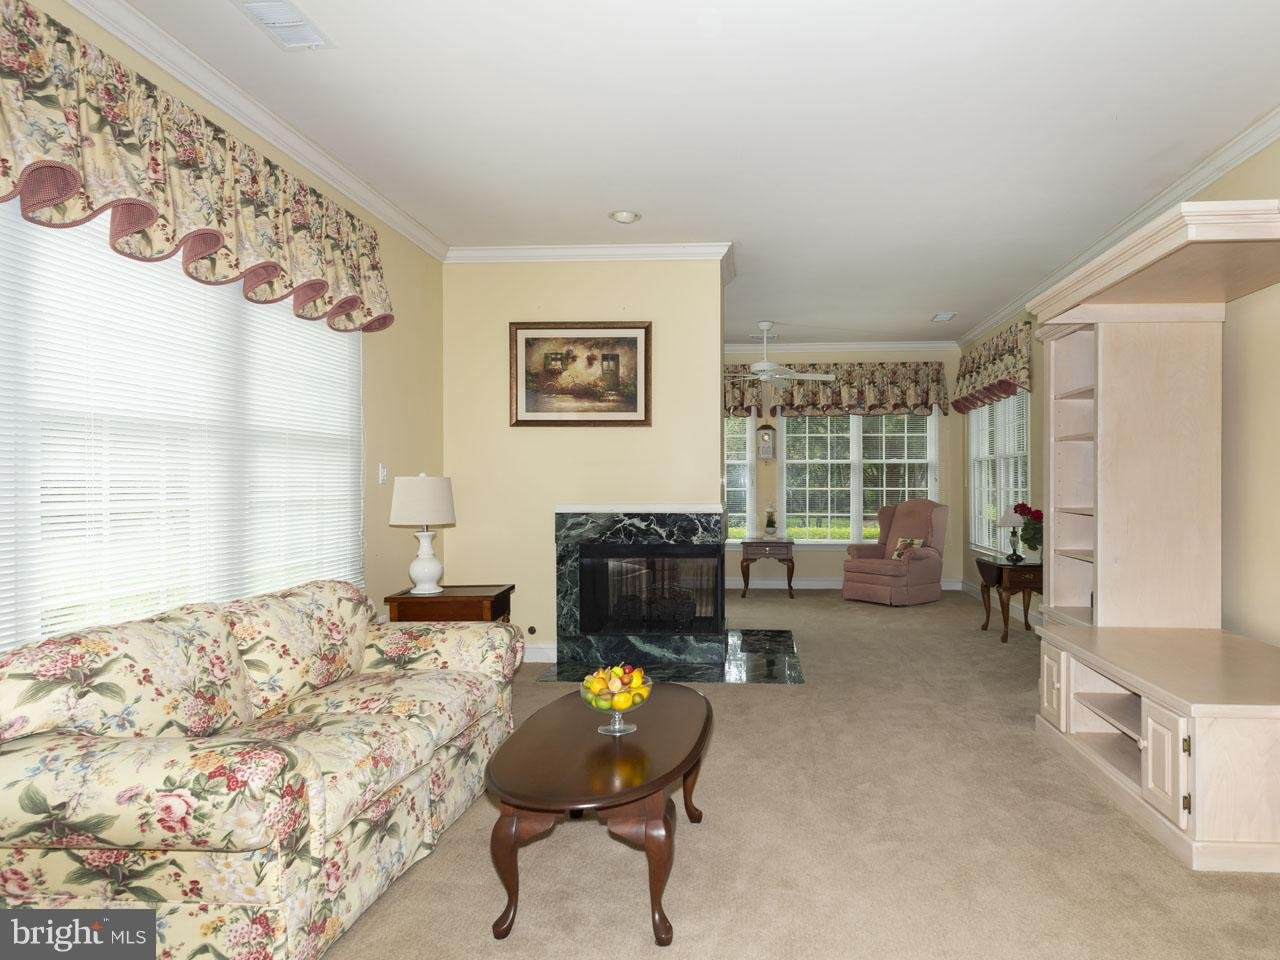 1005040466-300638085429-2021-07-22-06-45-08        Gainesville Delaware Real Estate For Sale   MLS# 1005040466  - Best of Northern Virginia